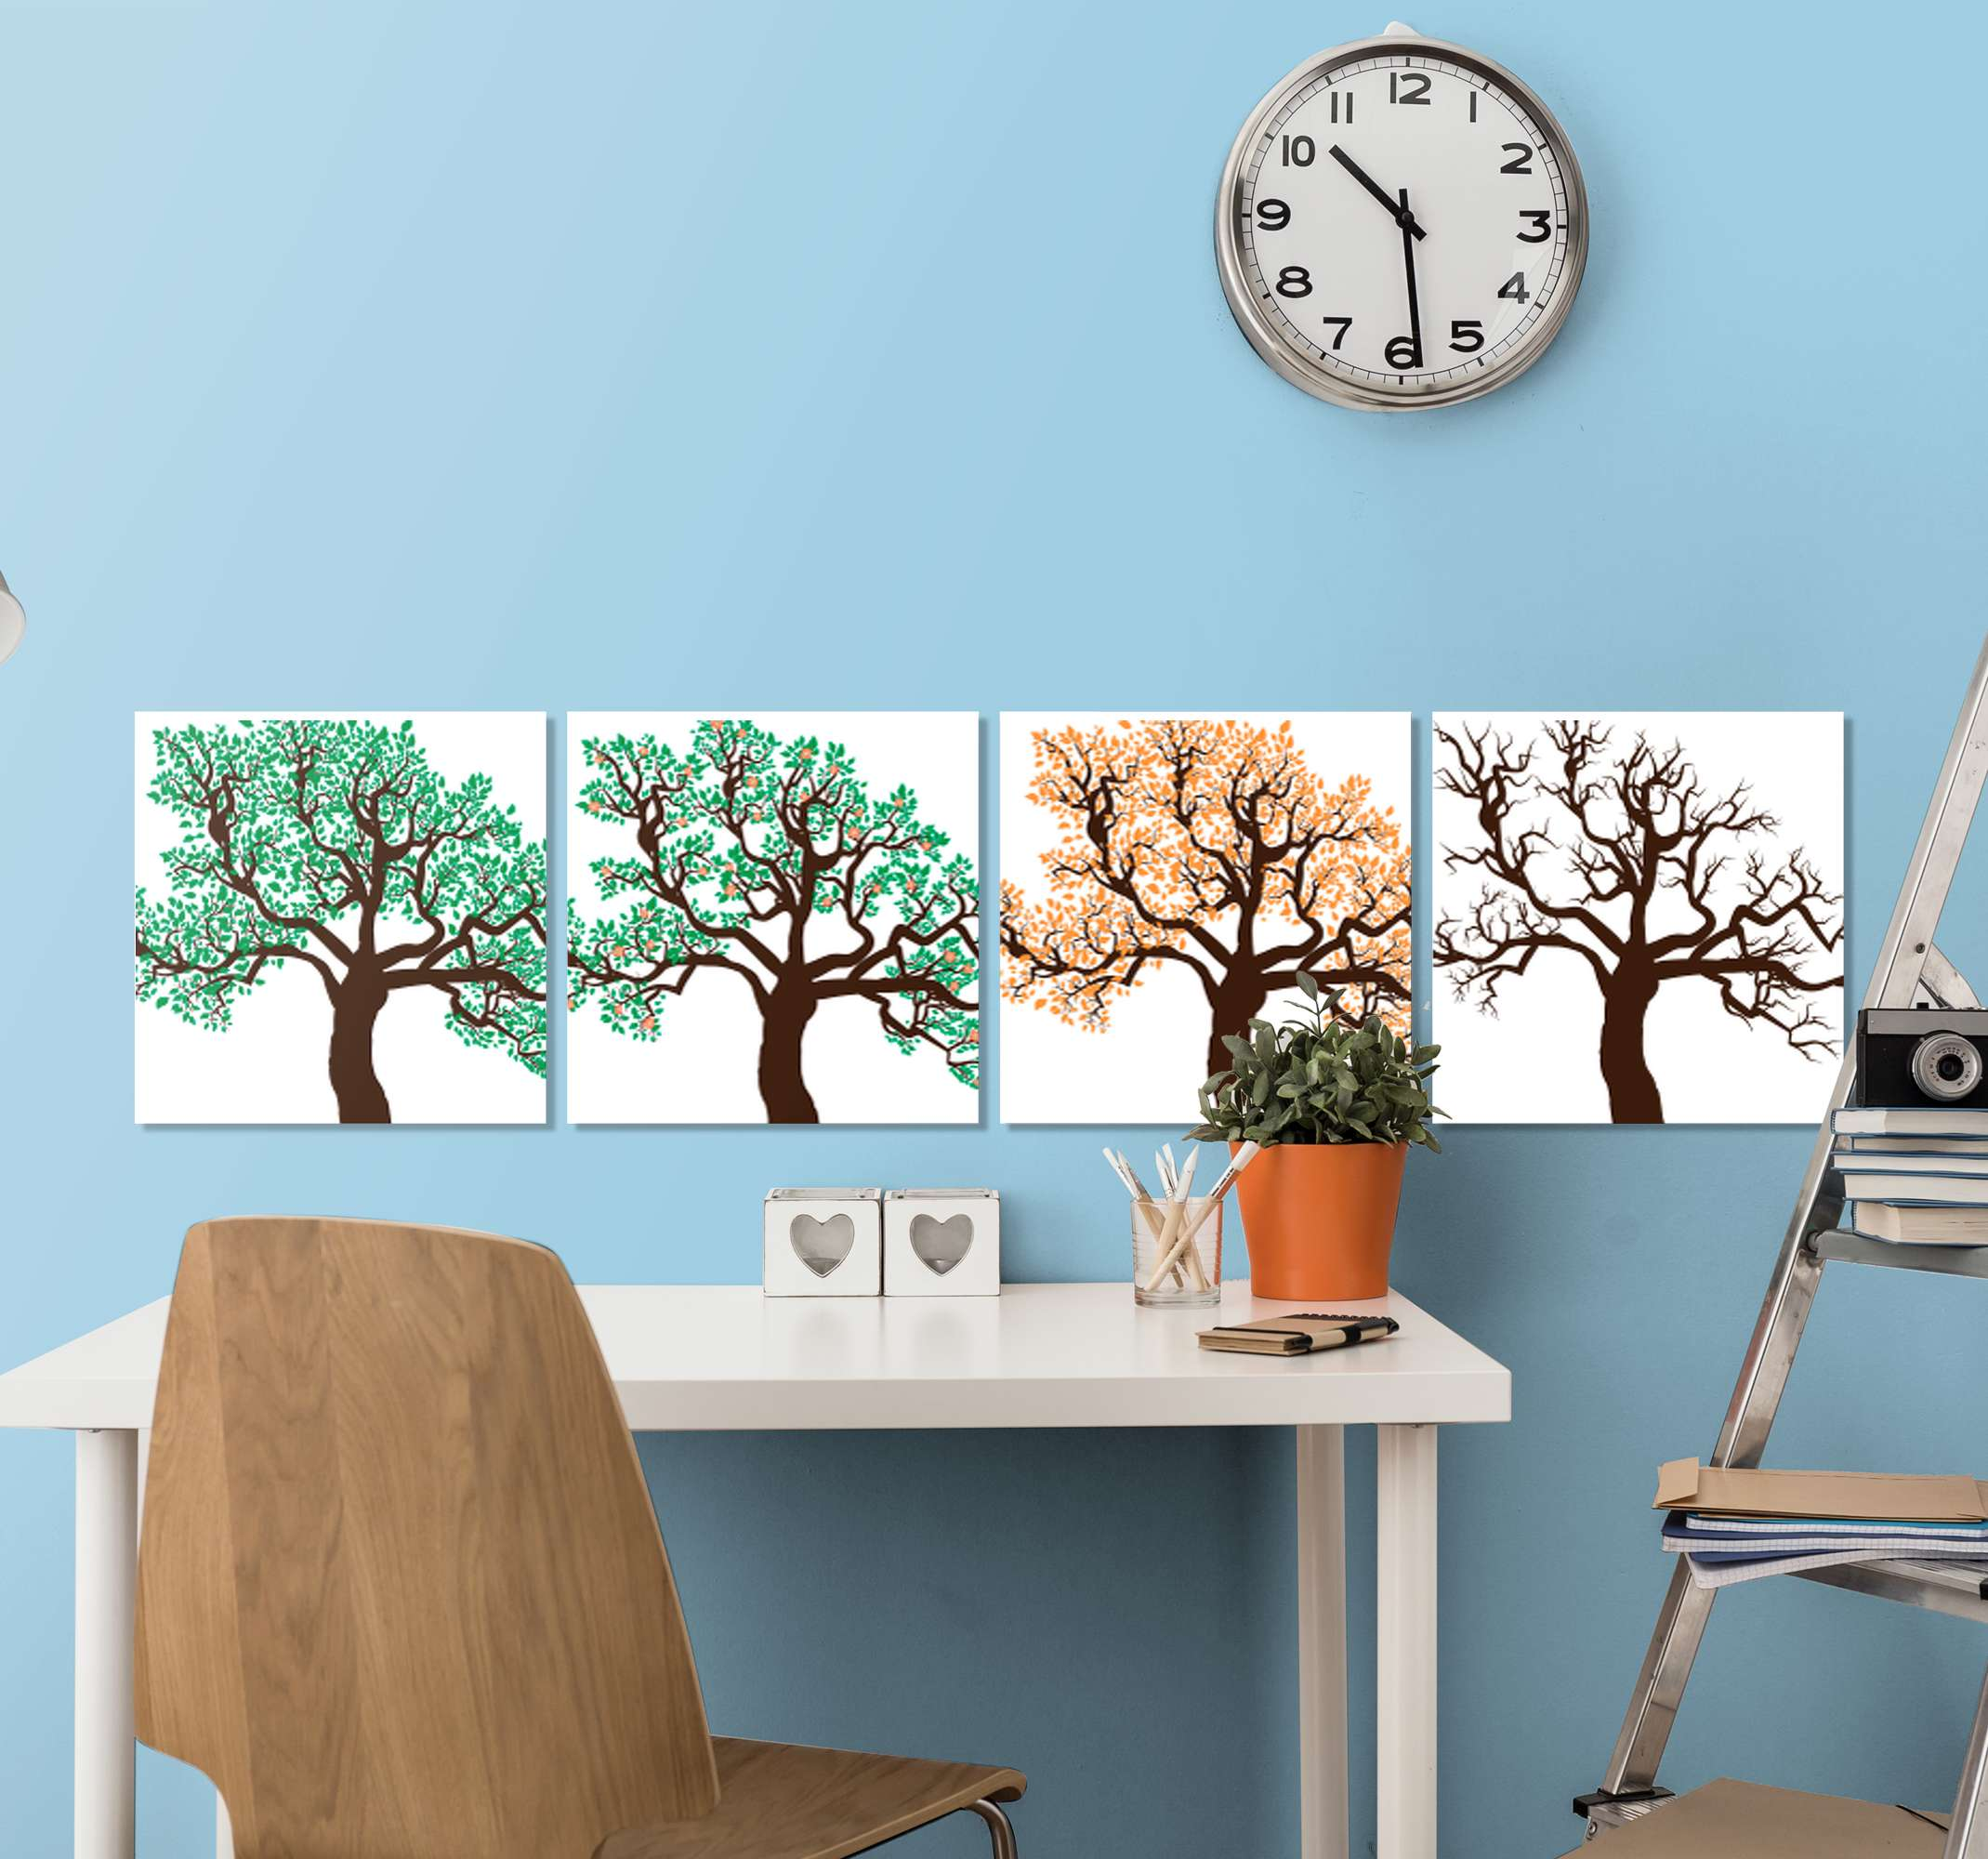 TenStickers. Four seasons landscape  modern art prints on canvas. A beautiful landscape canvas print that will look amazing on your walls! Easy to apply and adds great amounts of character.